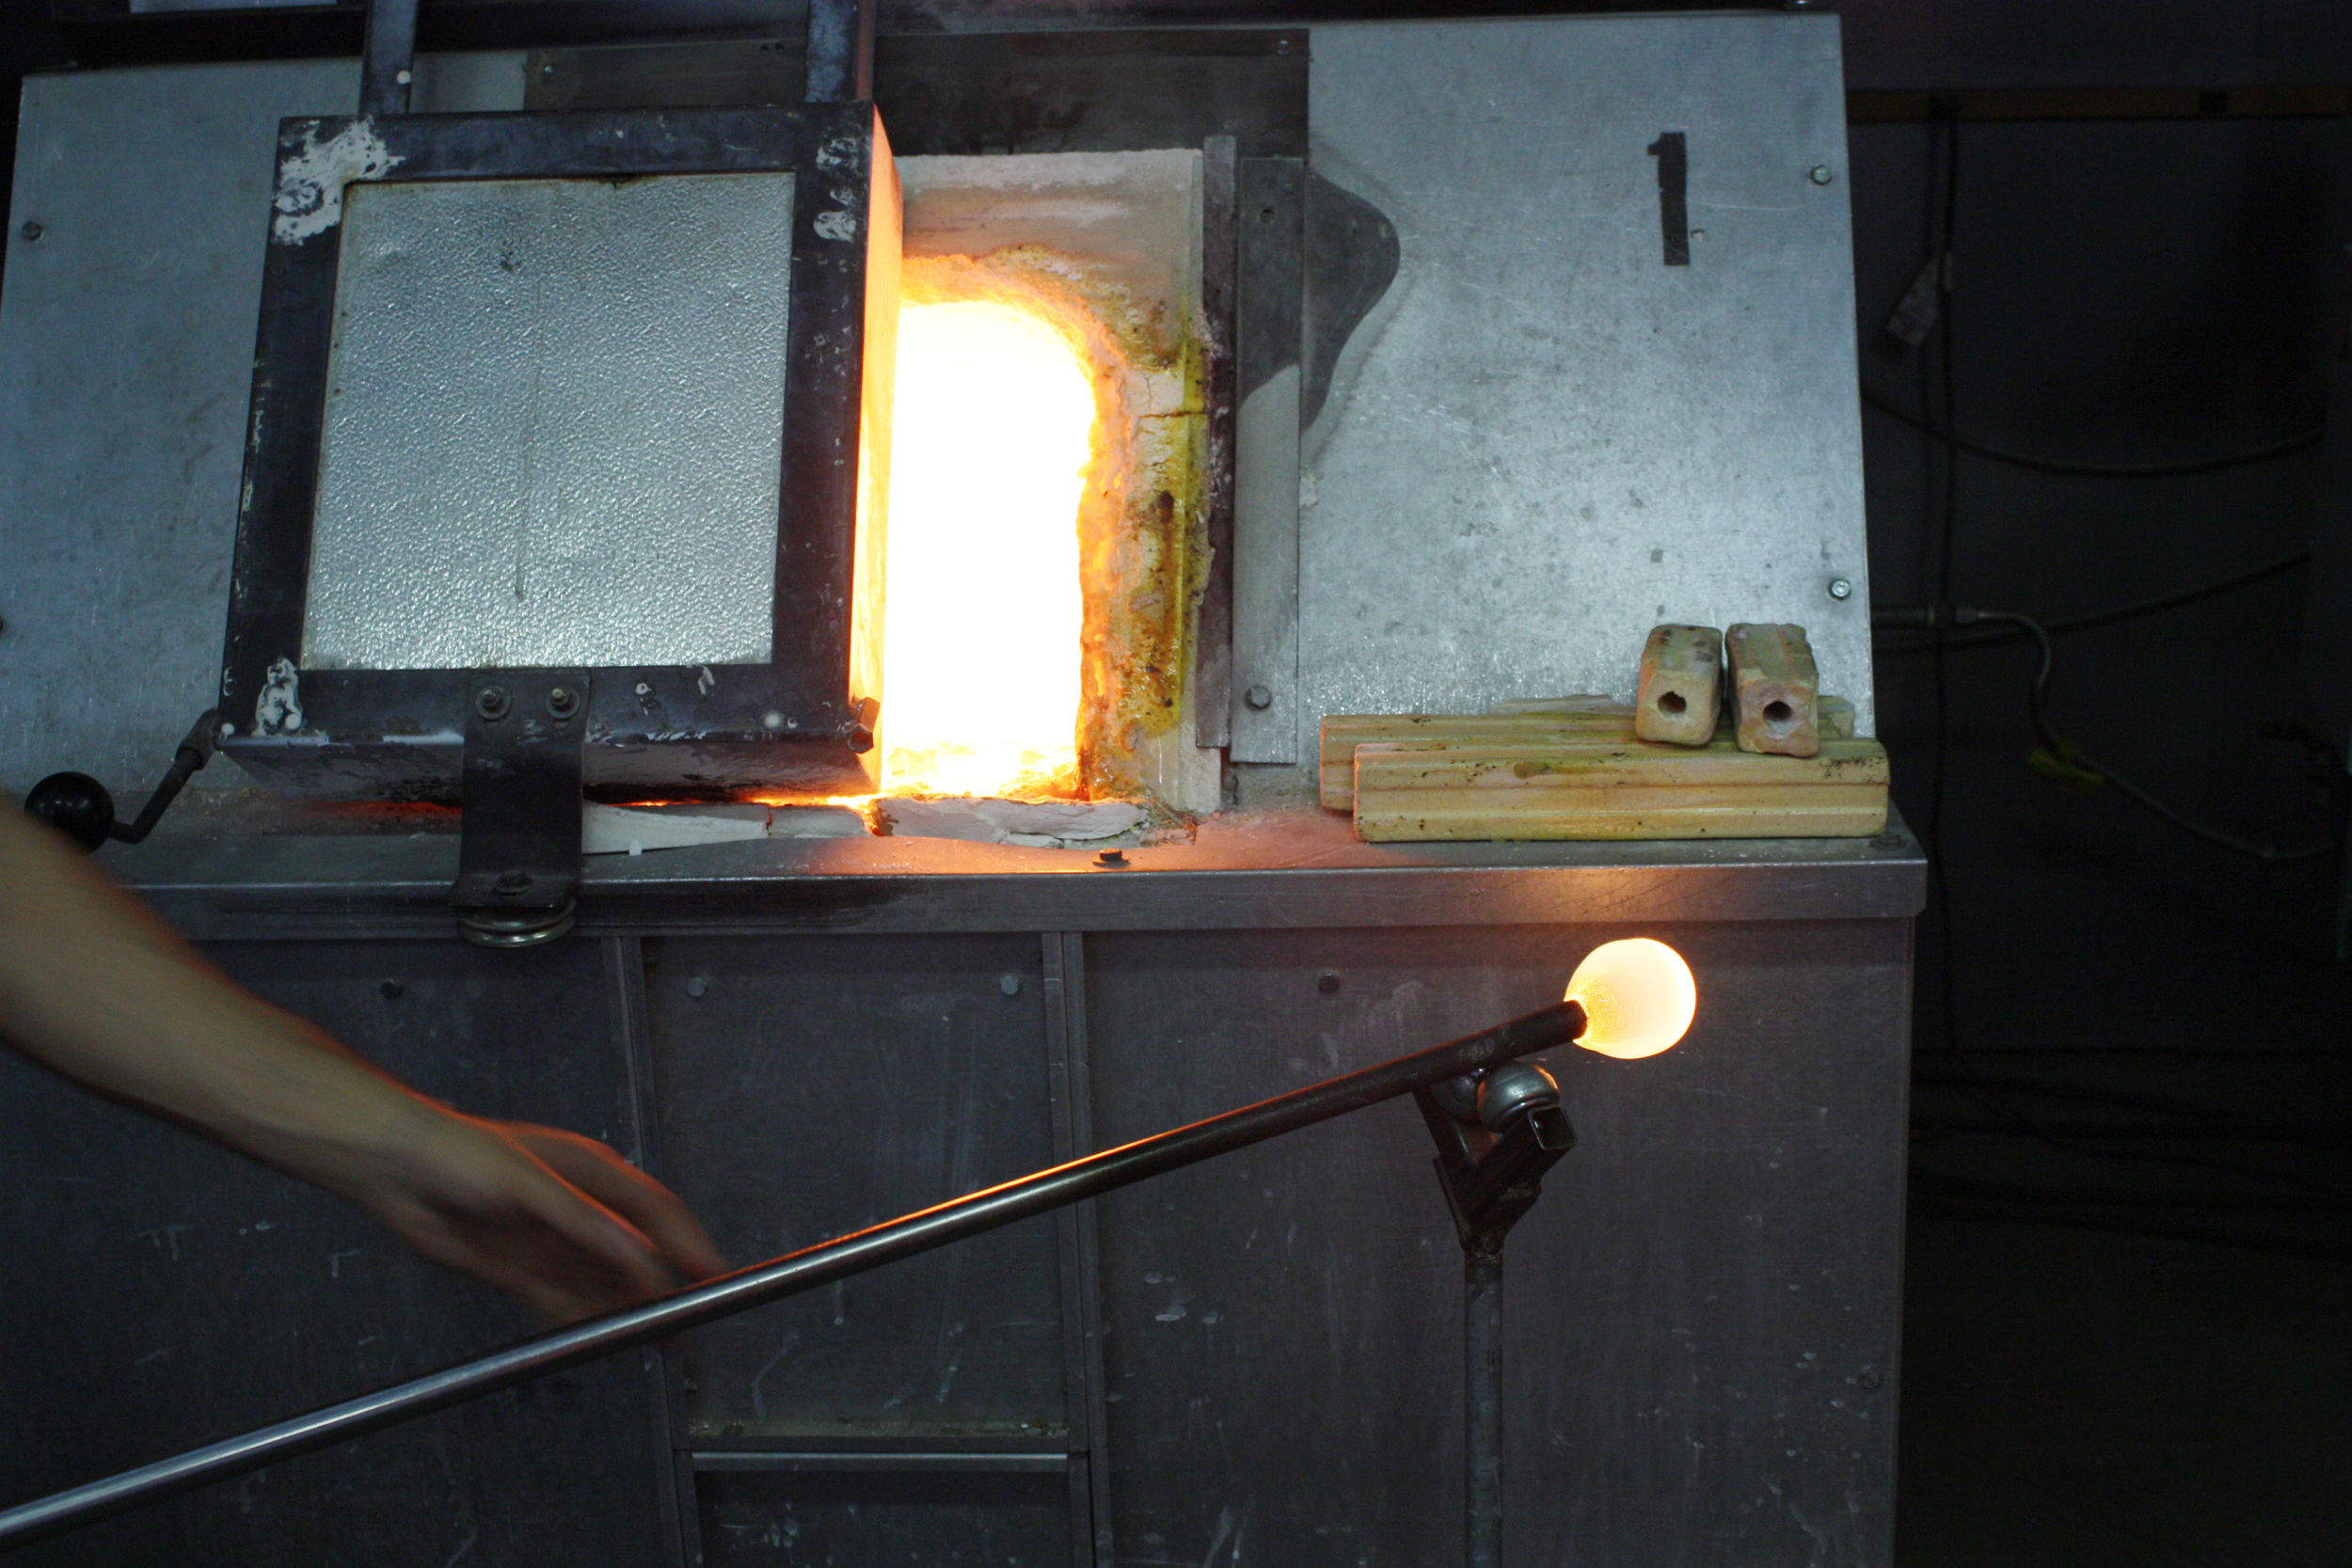 Once he's pulled out the glass that sticks to the end of this metal rod, he must spin it constantly. It's crazy! The glass never stops moving until he pops it off at the end of the process. I'm still not sure how his hands don't give out after four straight hours of glassblowing.